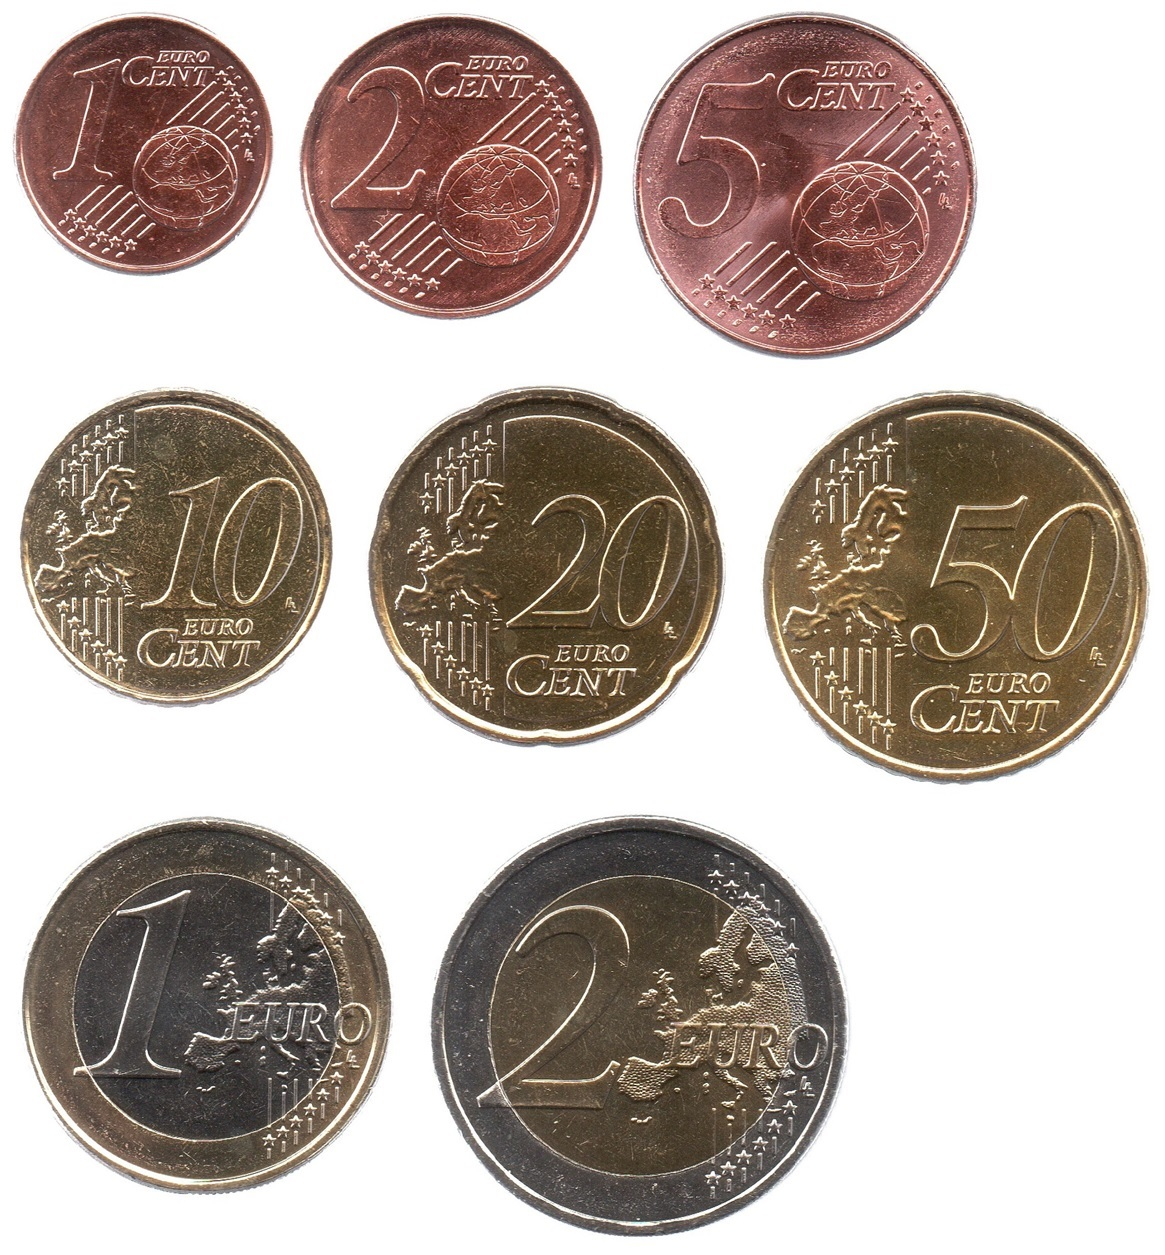 (LOT.EUR04.001to200.2019.1.spl.000000002) Complete series from 1 cent to 2 euro Cyprus 2019 Reverses (zoom)